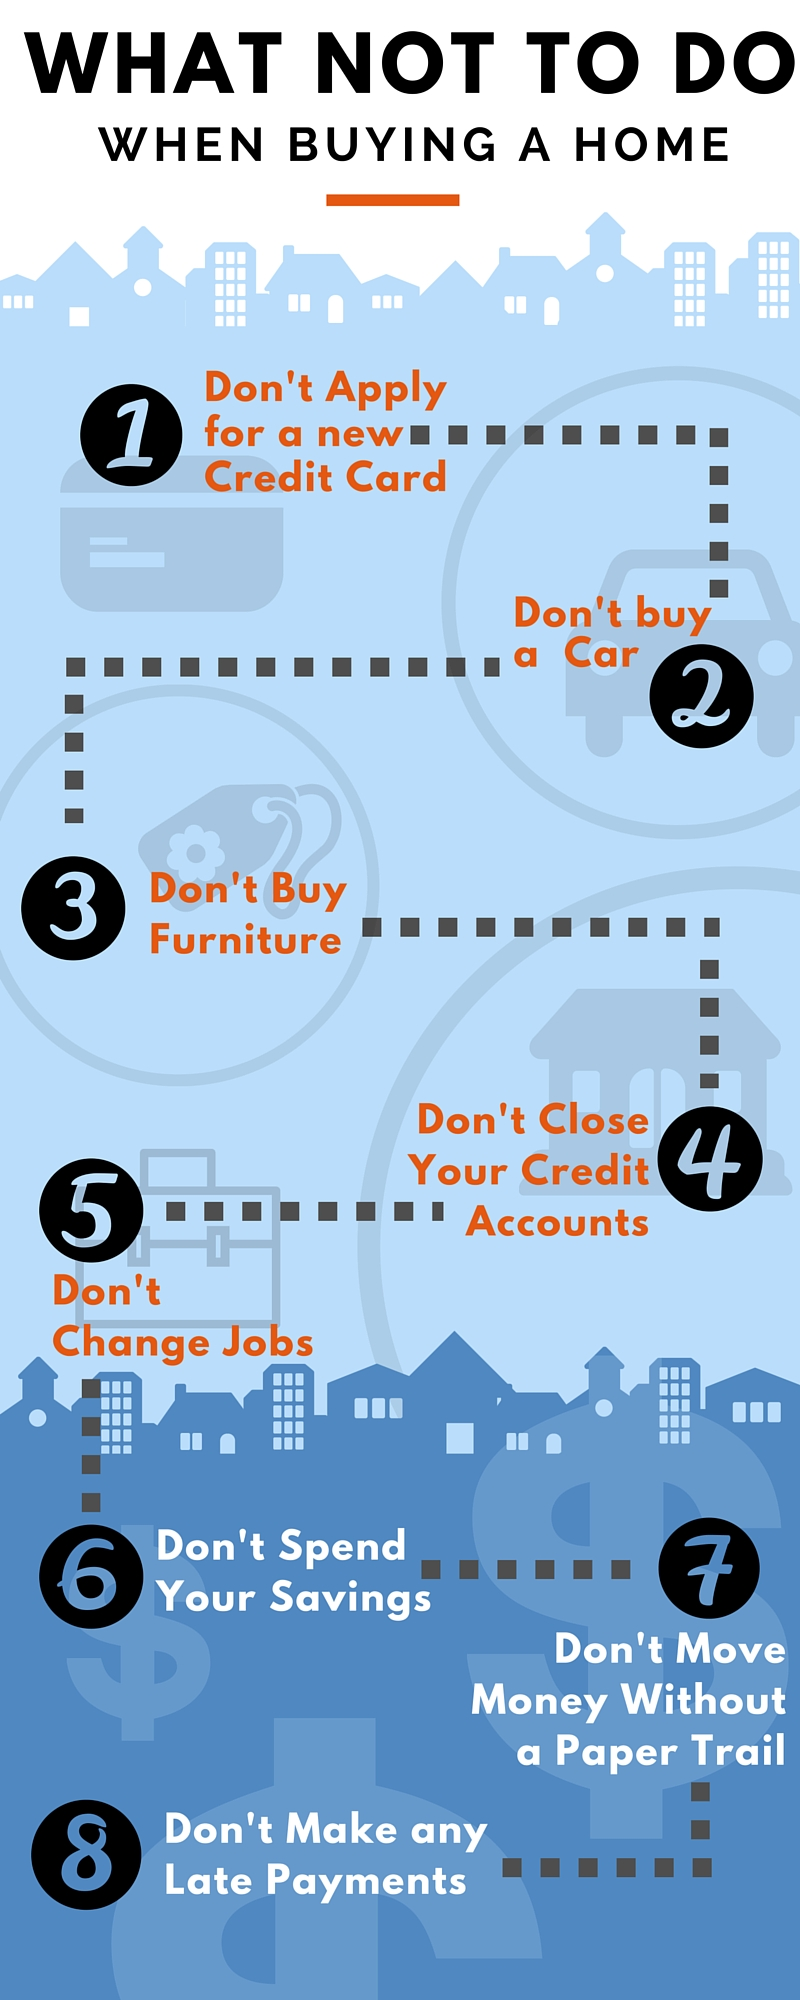 Infographic 8 things to avoid when buying a home